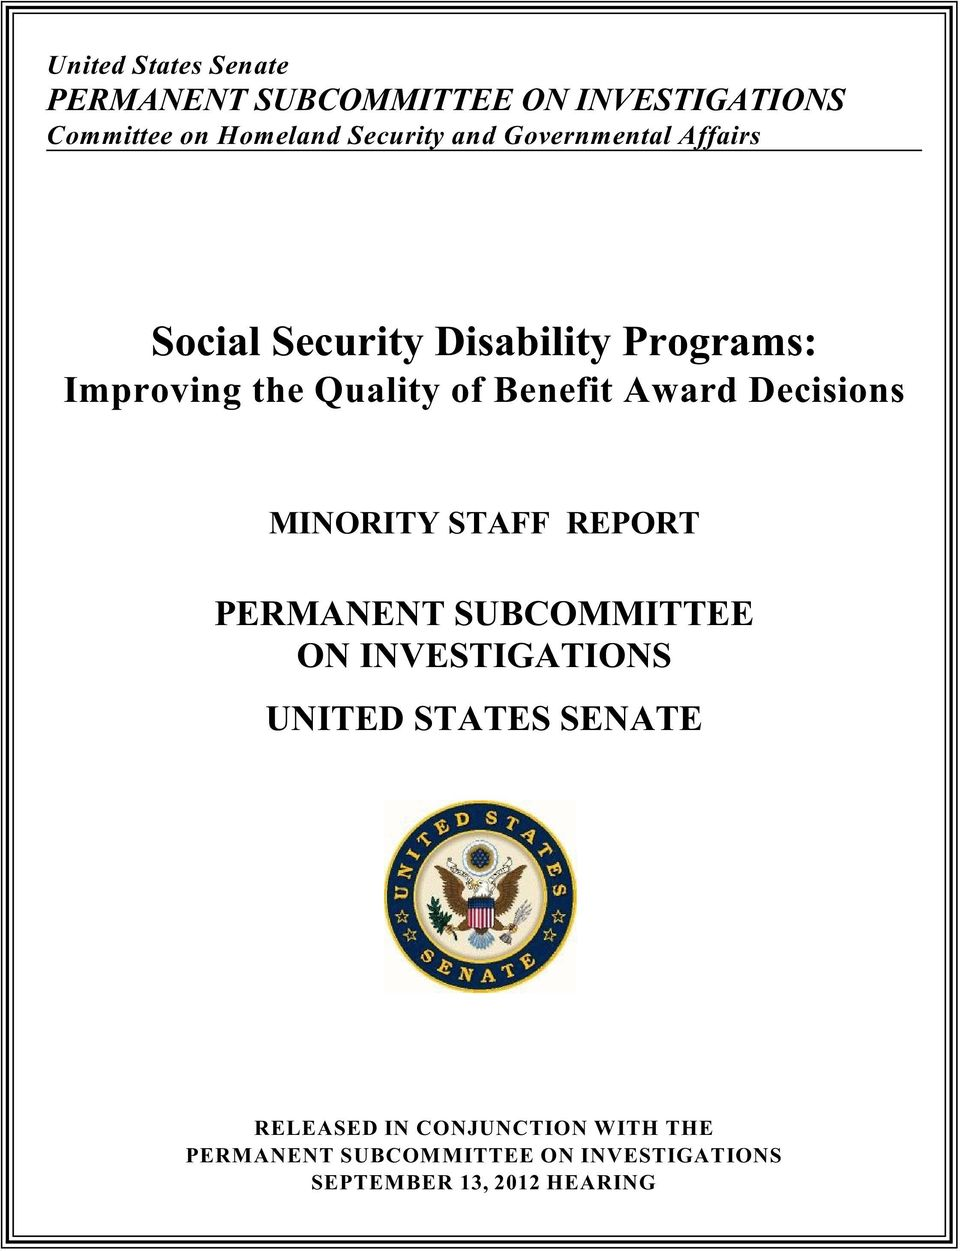 Decisions MINORITY STAFF REPORT PERMANENT SUBCOMMITTEE ON INVESTIGATIONS UNITED STATES SENATE